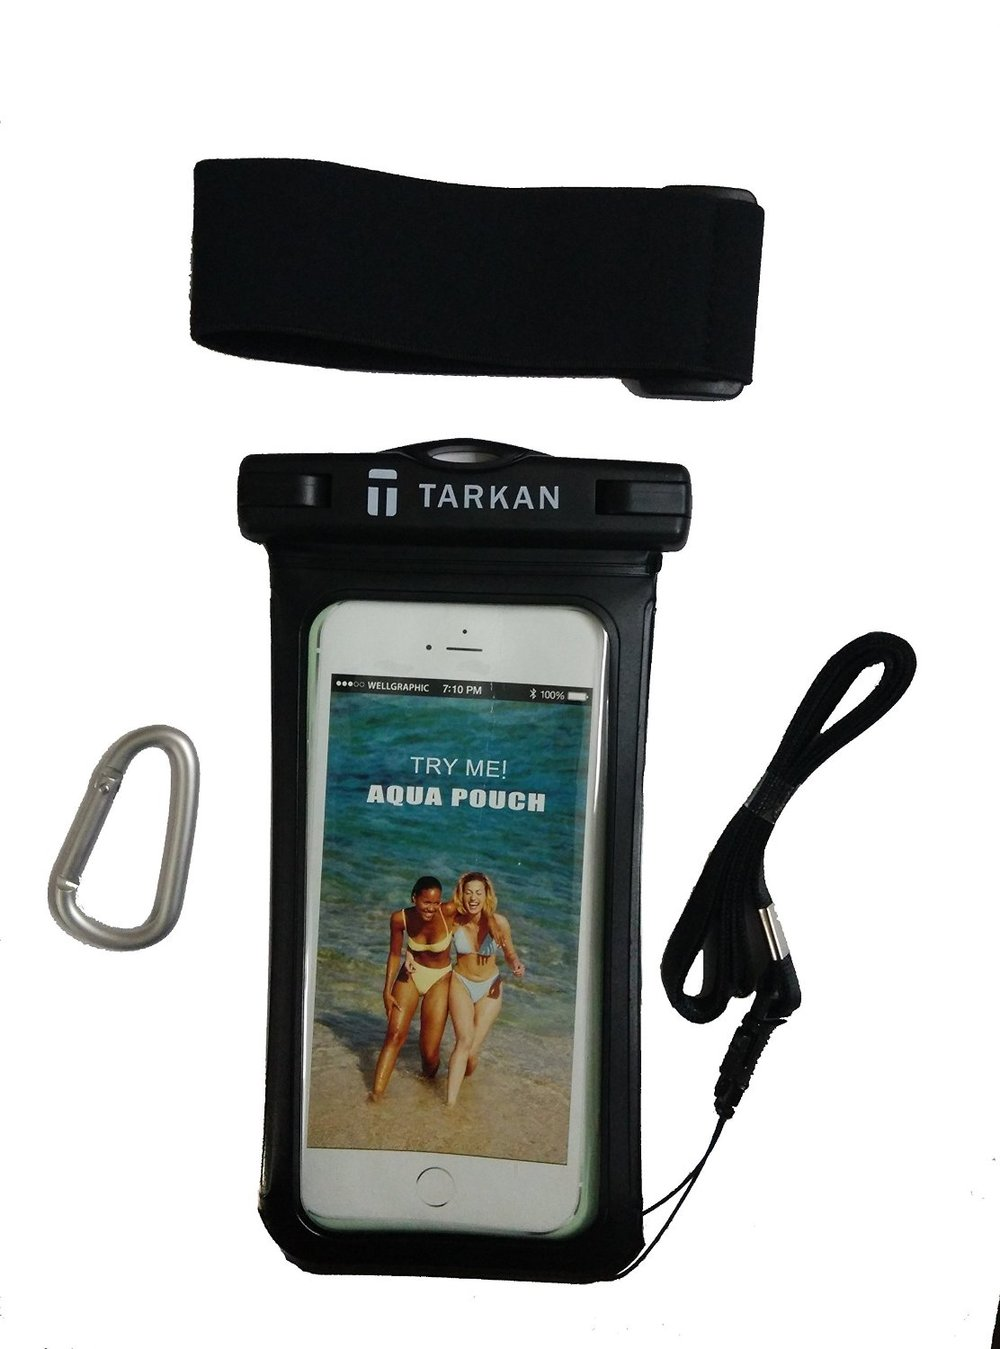 A generic waterproof pouch with a lanyard, fits most smartphones. Available on Amazon India